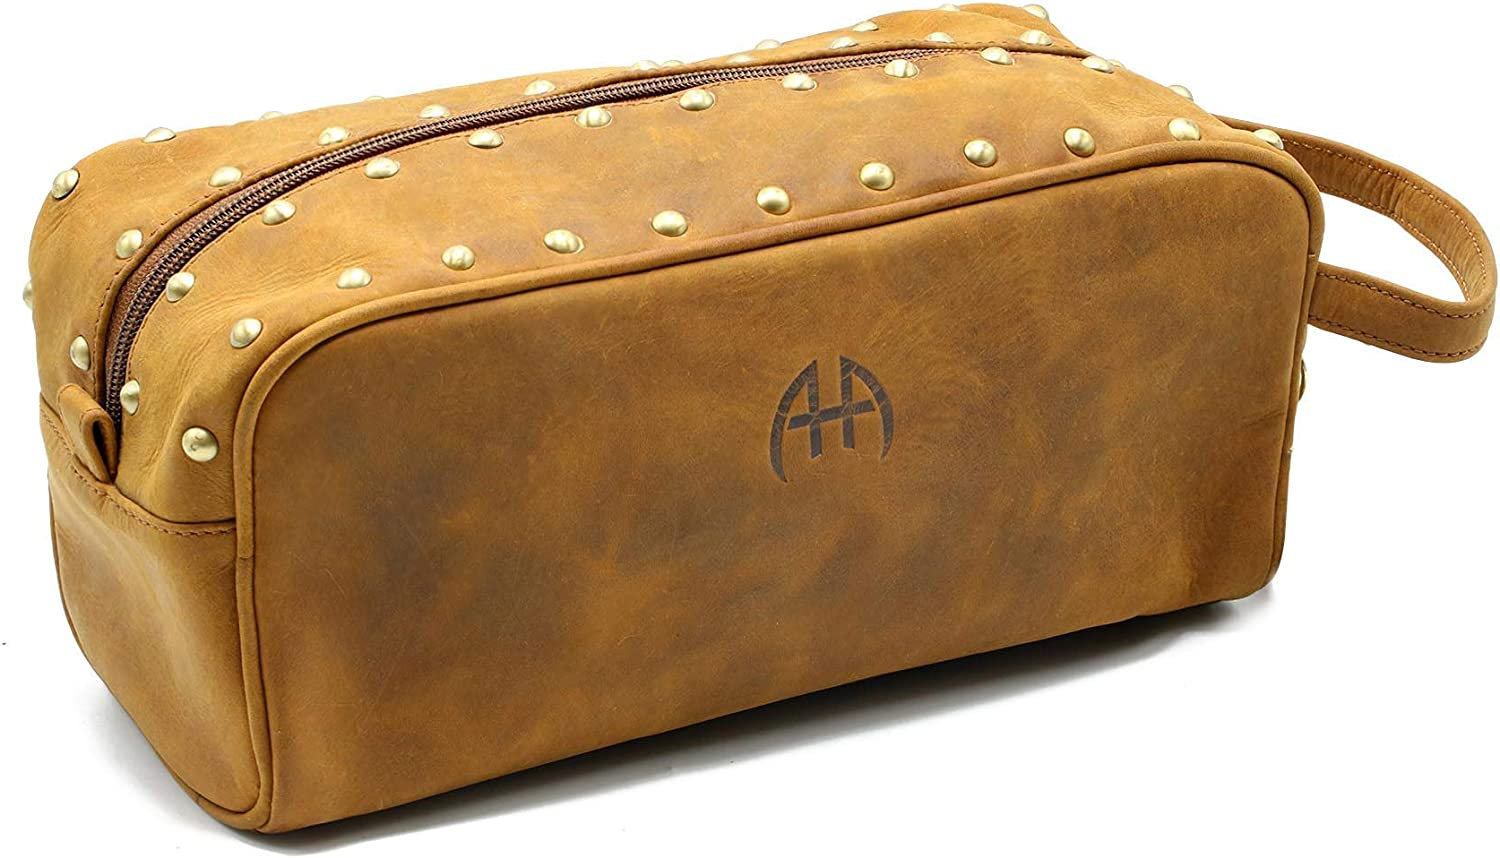 AHA Leather Toiletry Bag Dopp Kit for Men and Women Chic Vintage Design with Studs – Genuine Buffalo Leather Compact and Light, Ideal for Travel Complimentary Key Chain Included